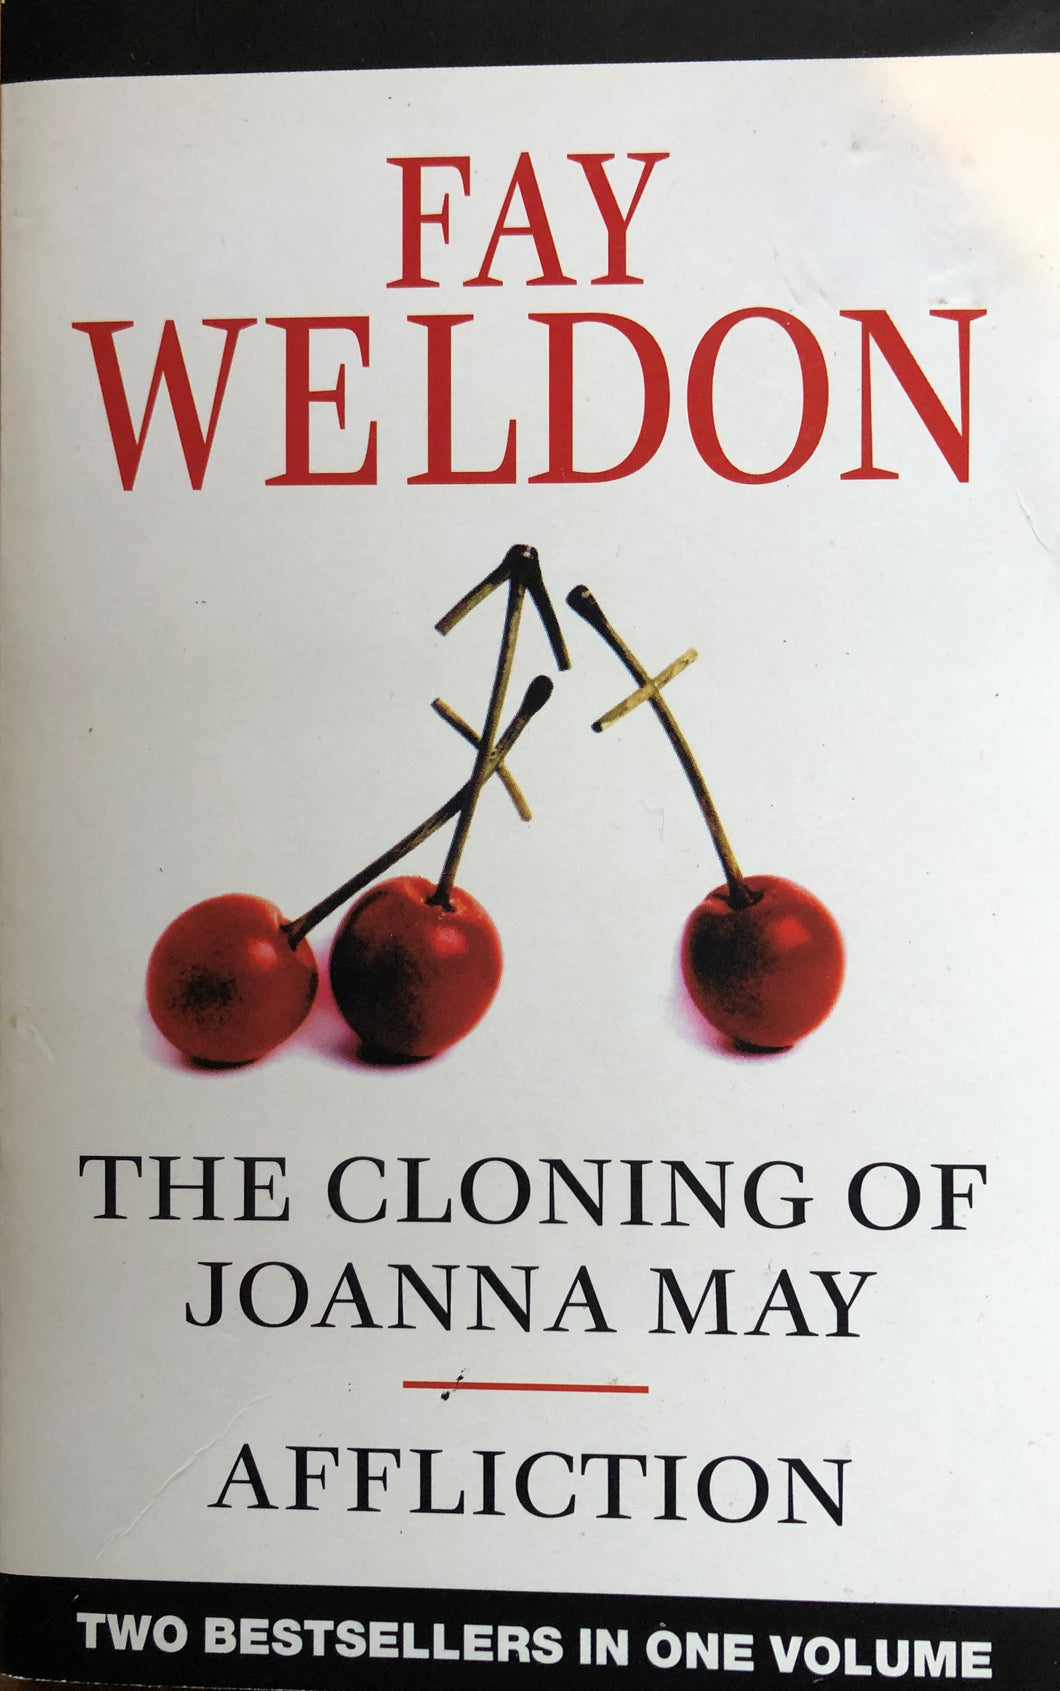 The Cloning of Joanna May / Affliction